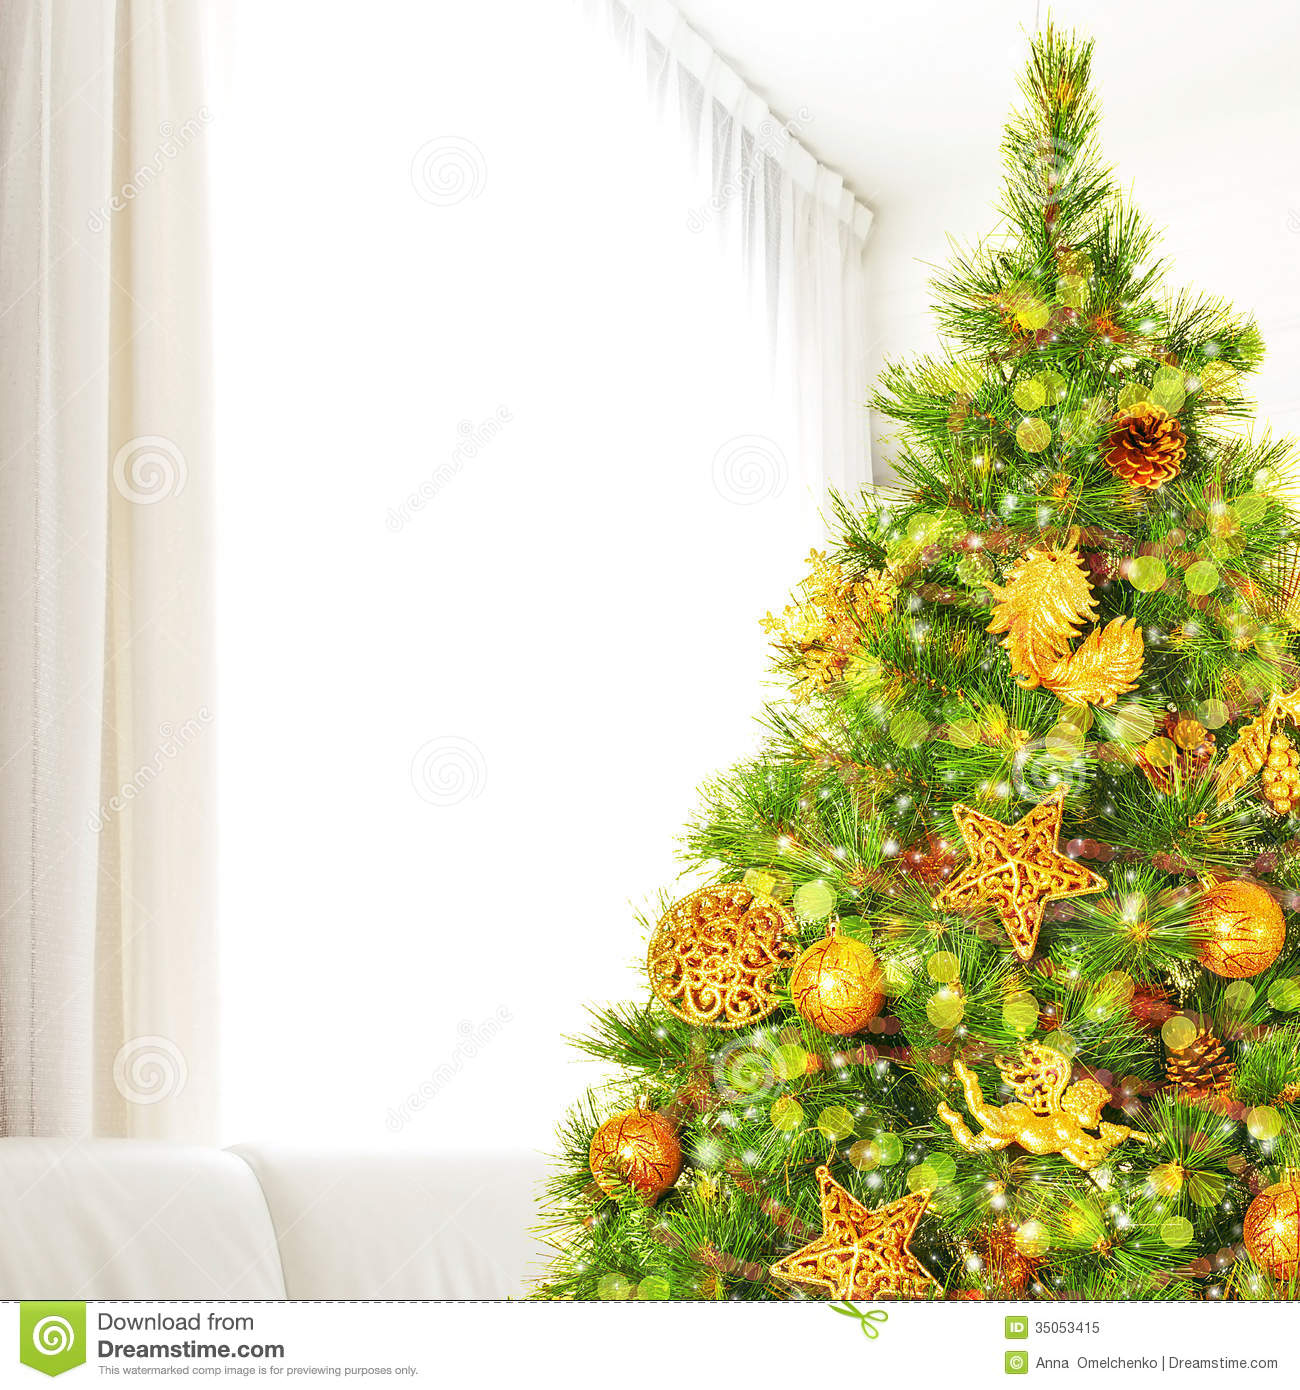 Christmas Tree At Home Stock Image. Image Of Bubble